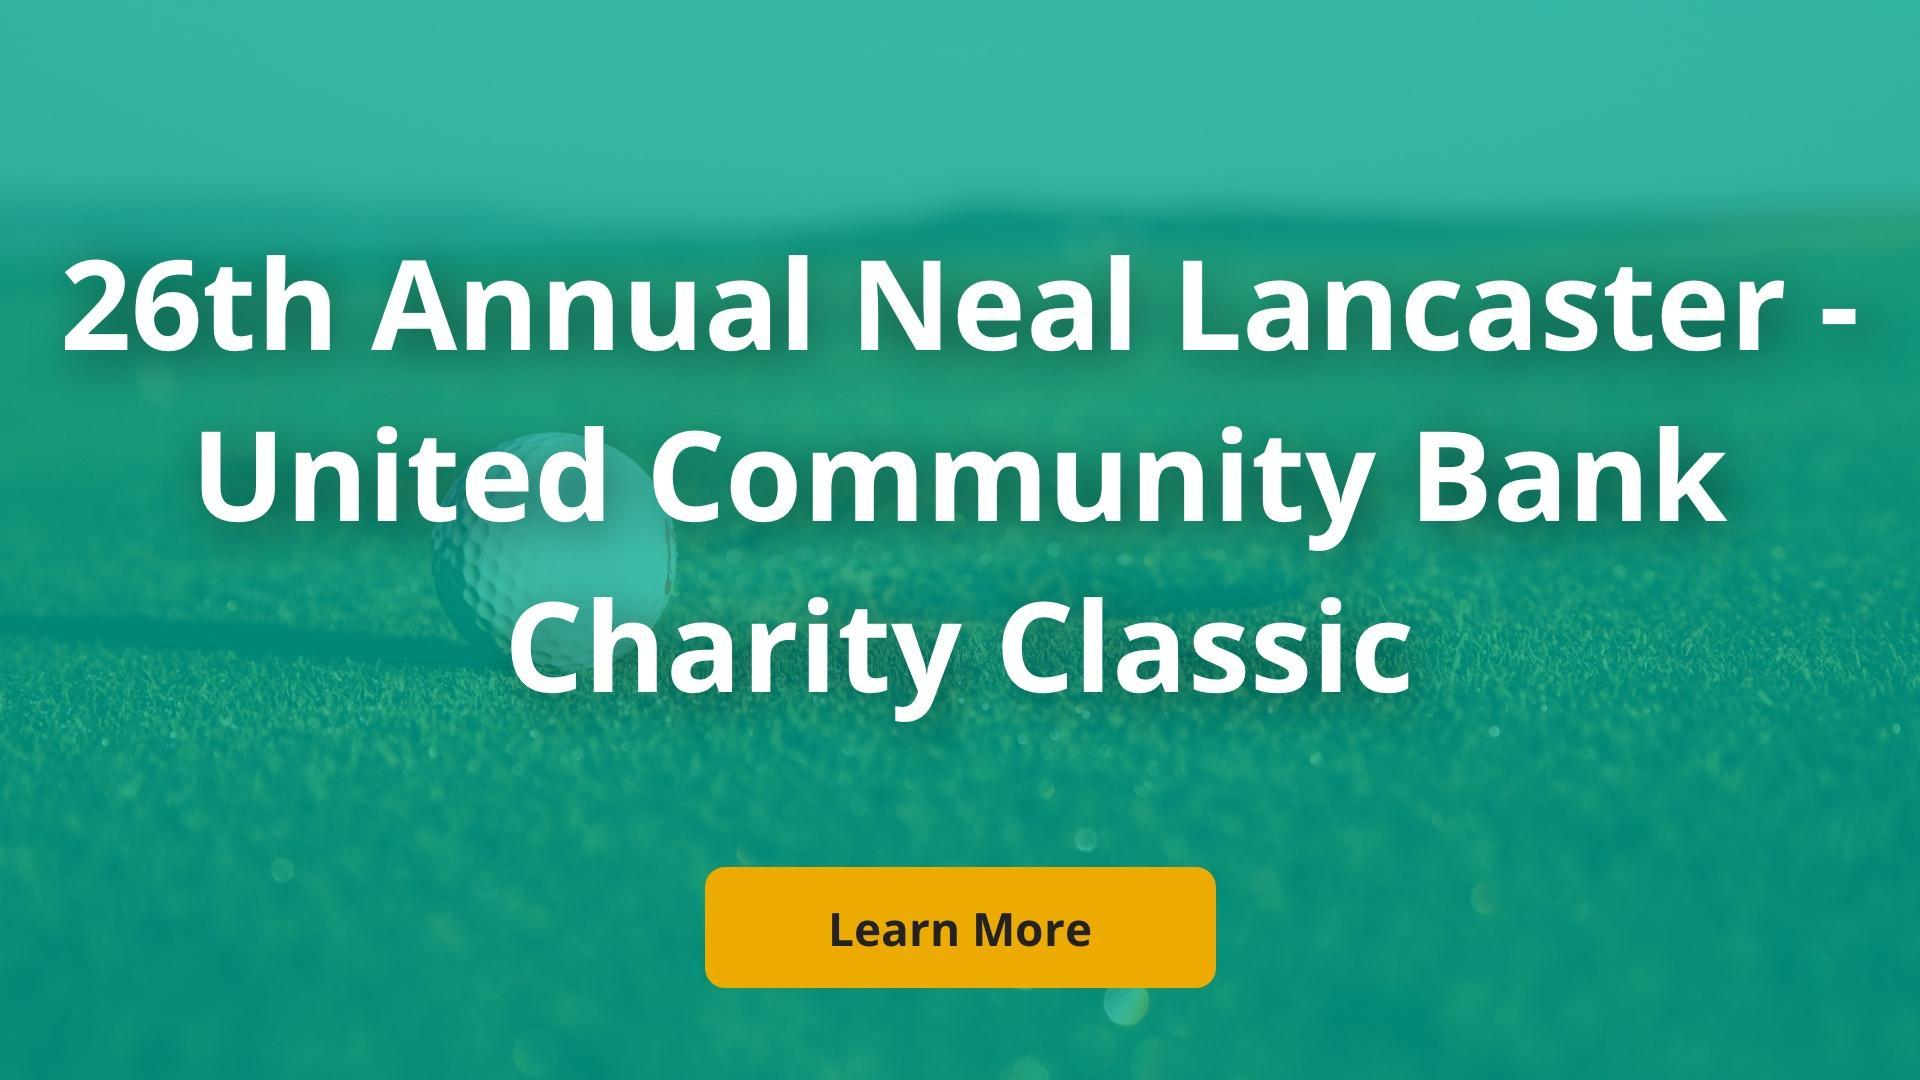 Click here to learn more about the Neal Lancaster - United Community Bank Charity Classic